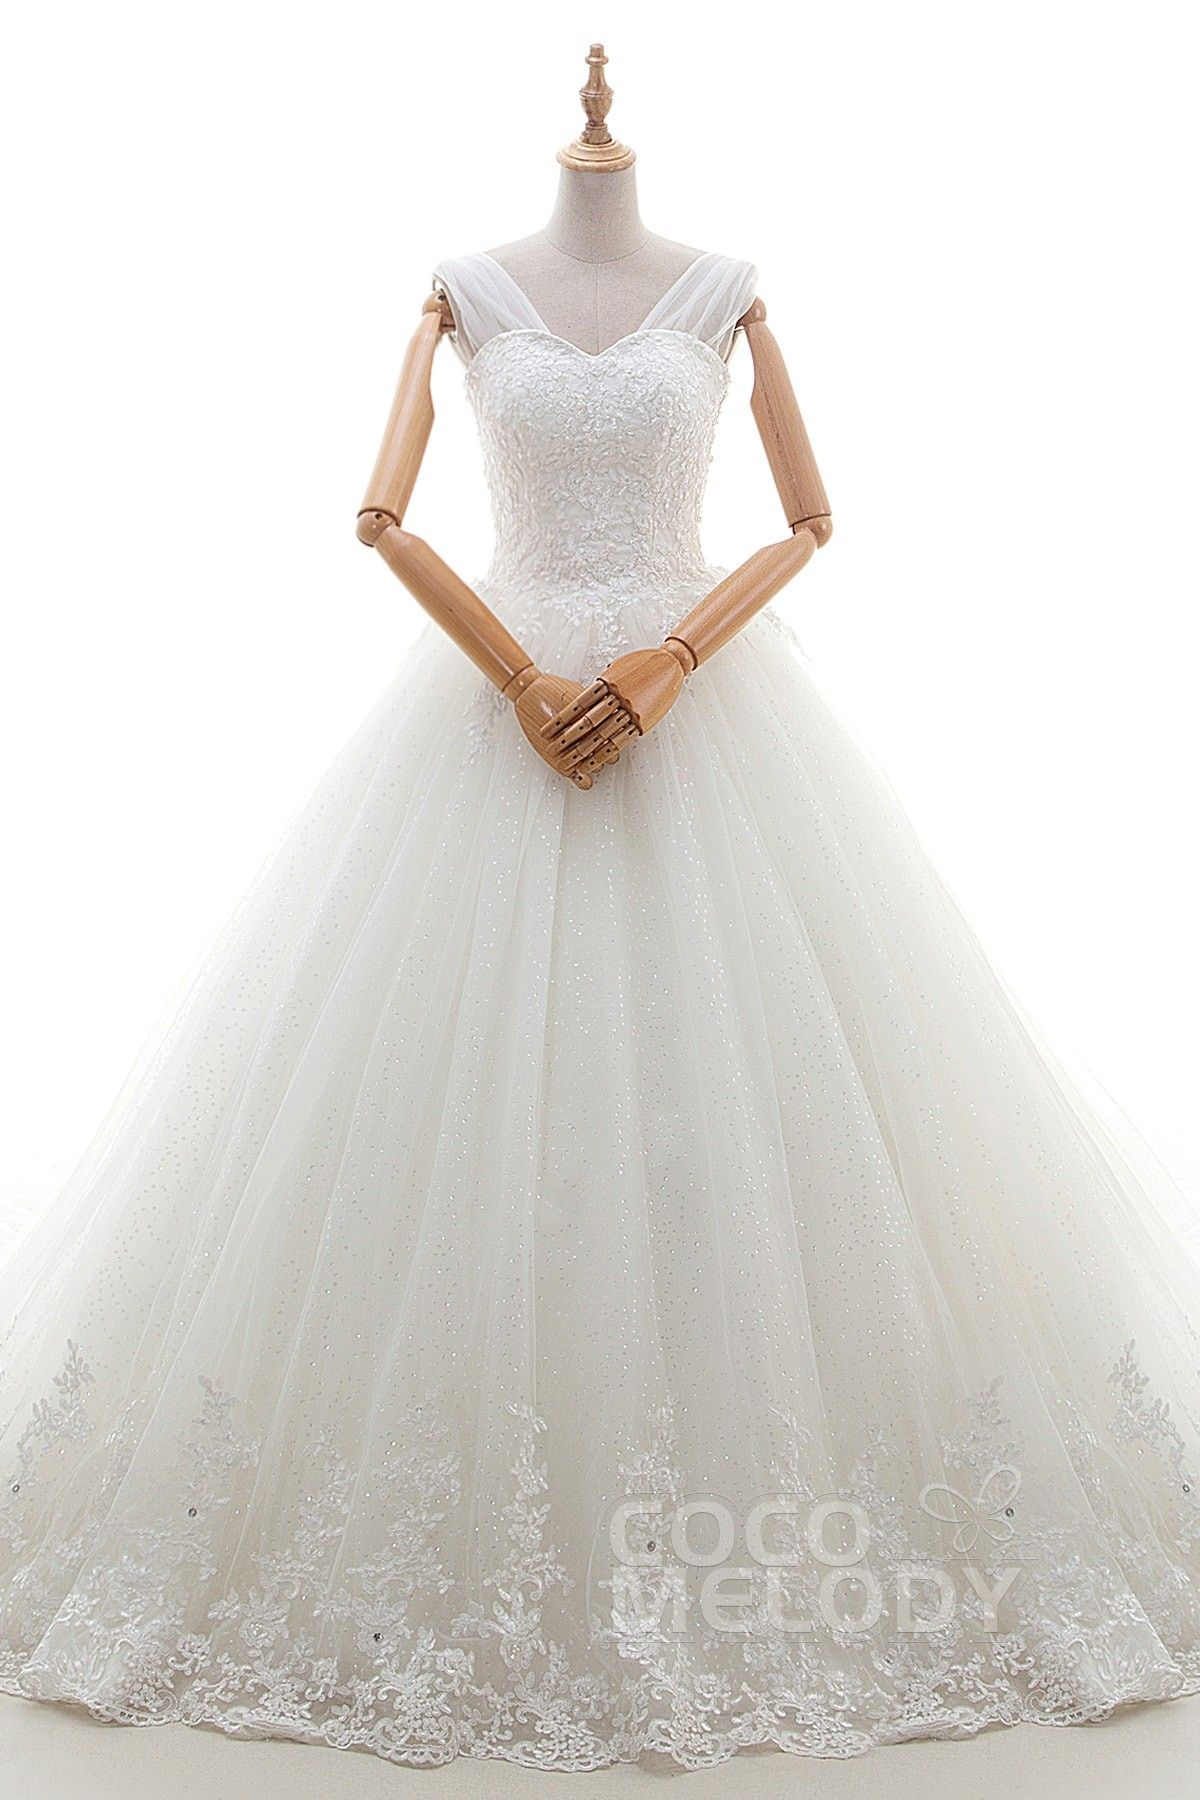 Princess Cathedral Train Tulle Lace Wedding Dress